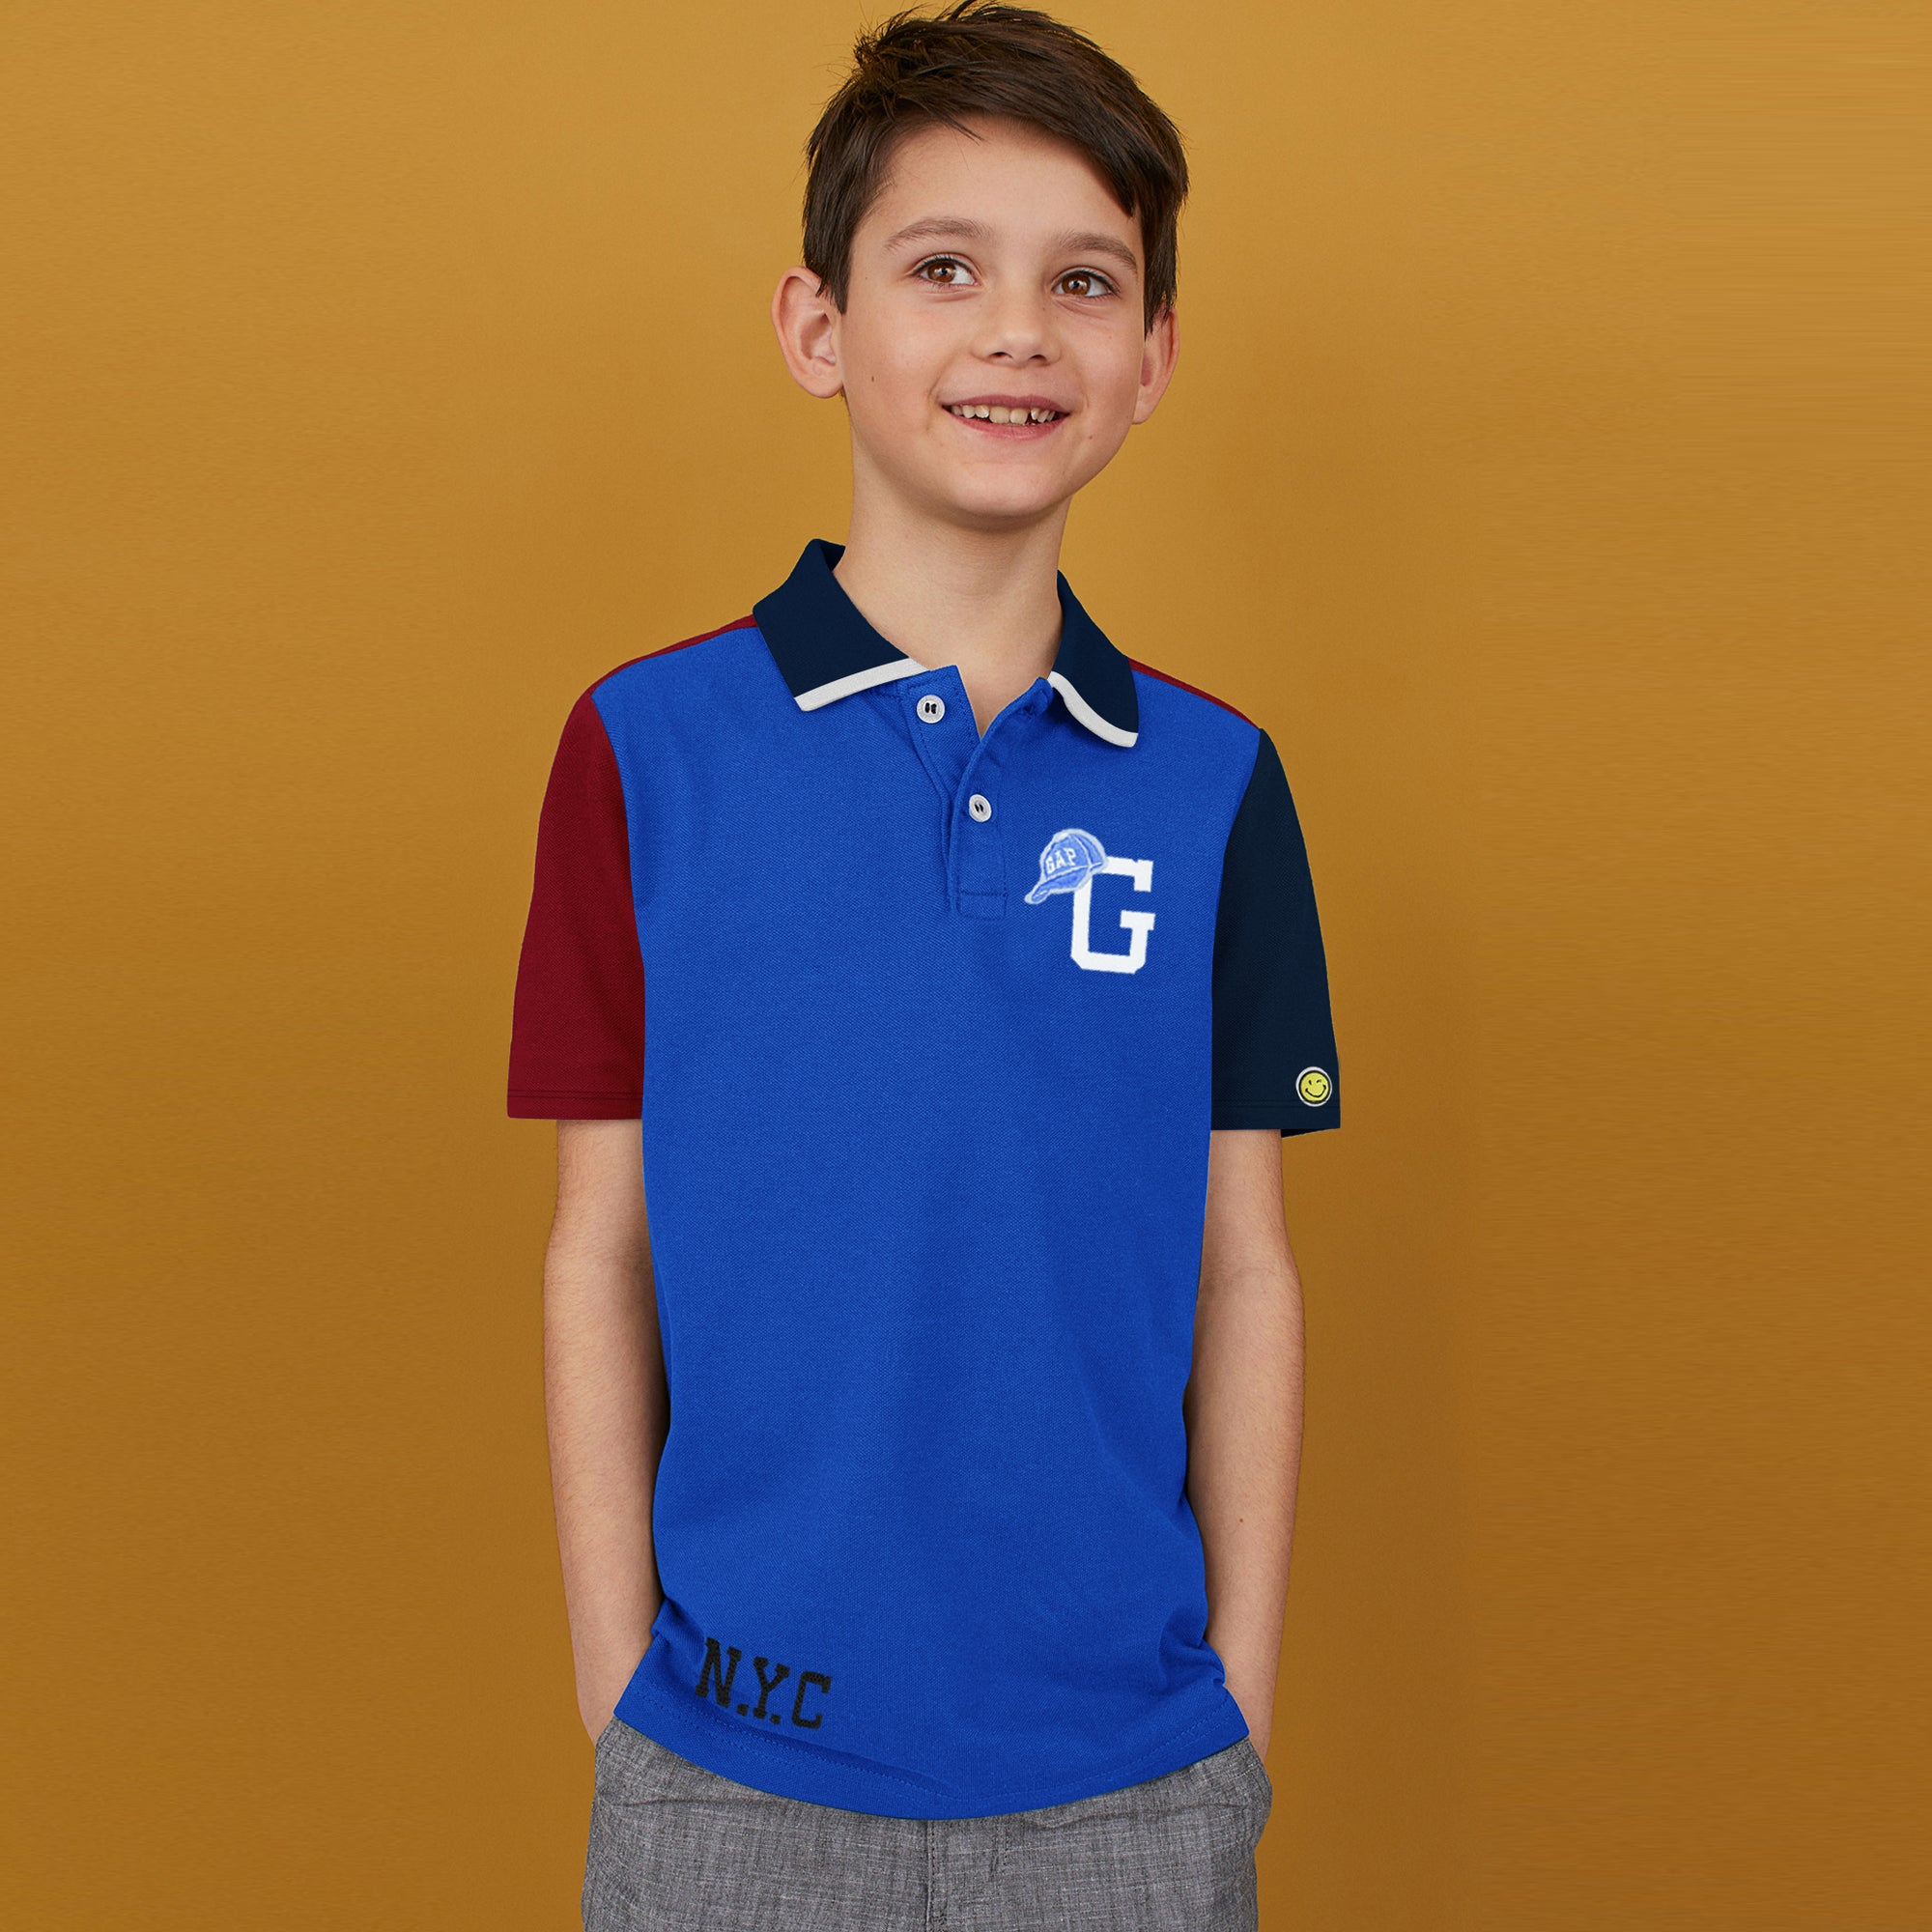 brandsego - GAP Half Sleeve P.Q Polo Shirt For Kids-BE8632